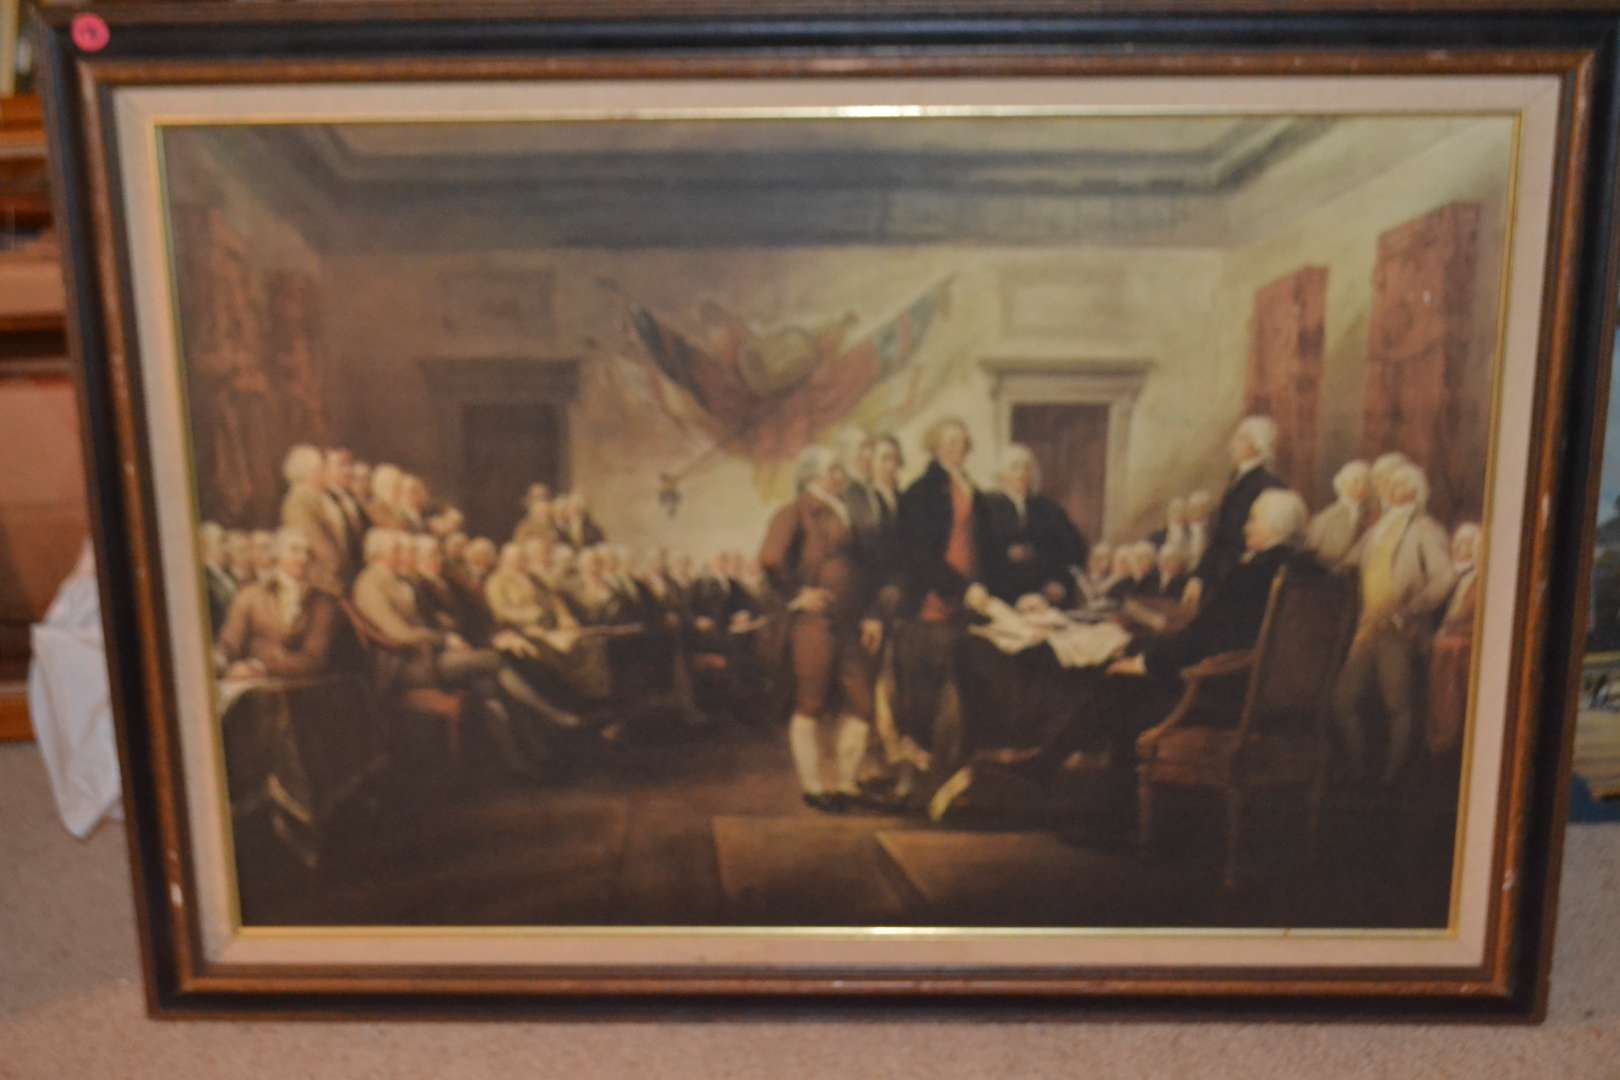 Lot # 176 BEAUTIFUL FRAMED ART OF THE SIGNING OF THE DECLARATION OF INDEPENDENCE 25 X 35